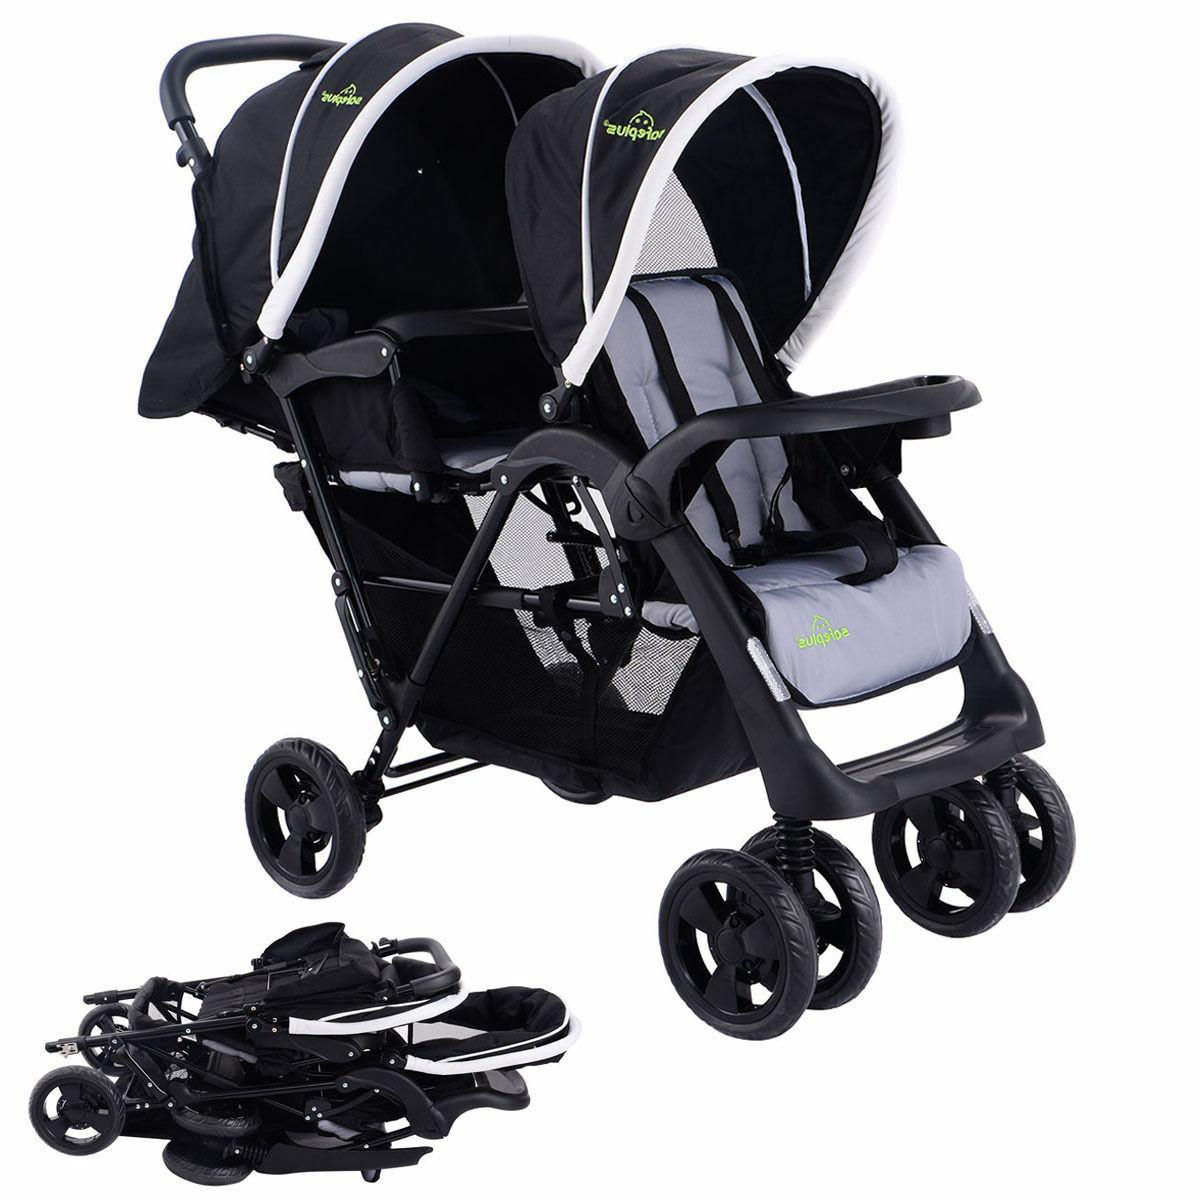 Costway Foldable Double Jogger Travel